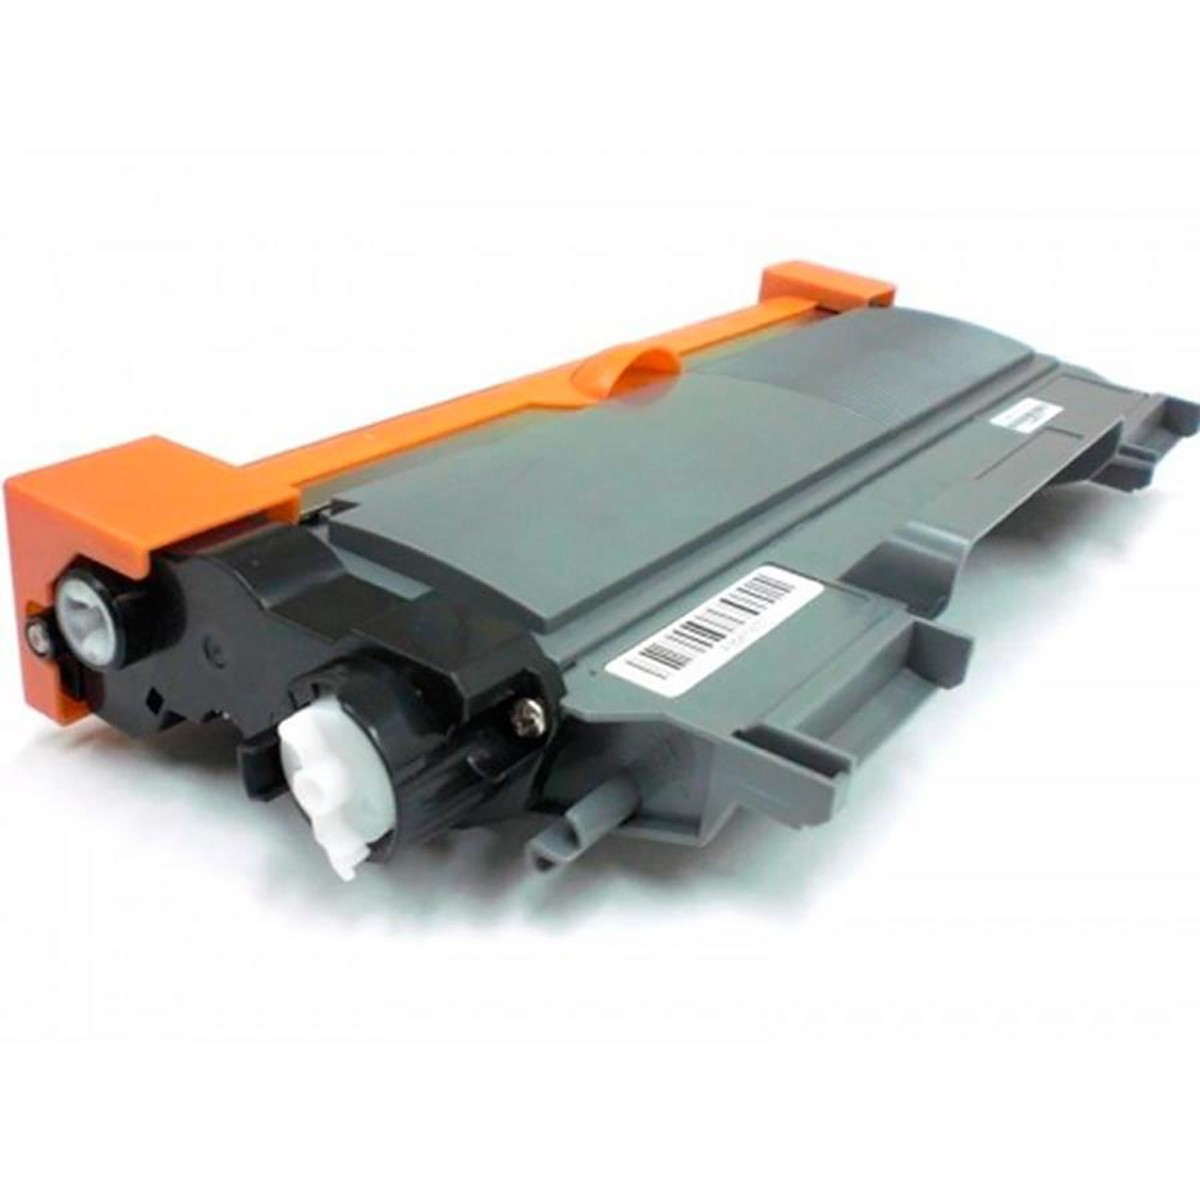 Toner Brother TN420 TN450 - DCP7055 DCP7065 Compativel 2,6K NU-ZL03-H2CW